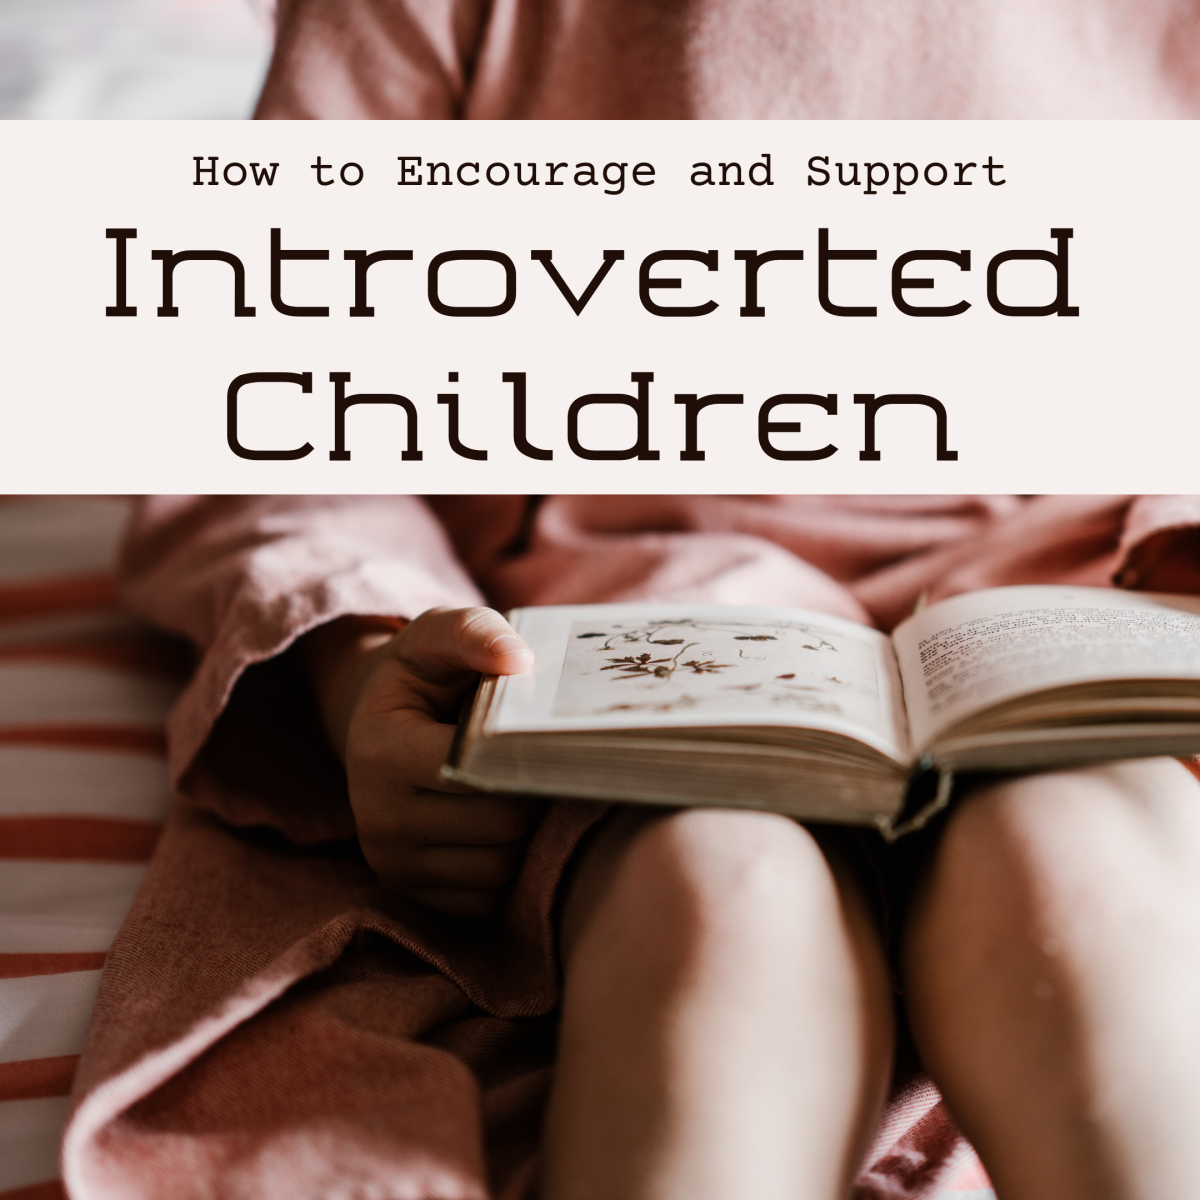 Find advice for parents on how to communicate better with an introverted child and develop a more meaningful relationship.